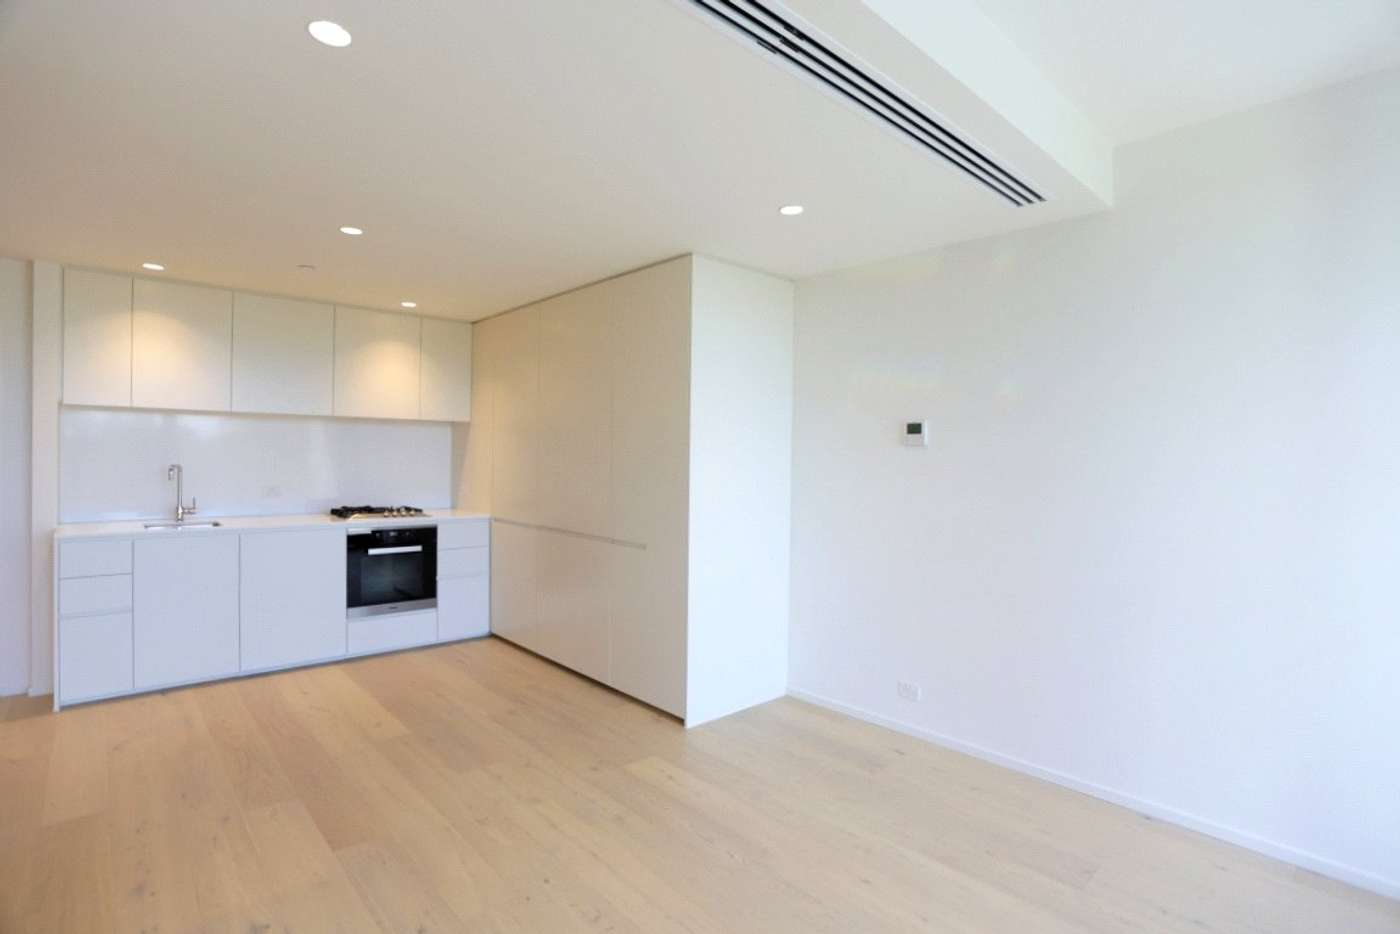 Main view of Homely apartment listing, 304/1 Evergreen Mews, Armadale VIC 3143